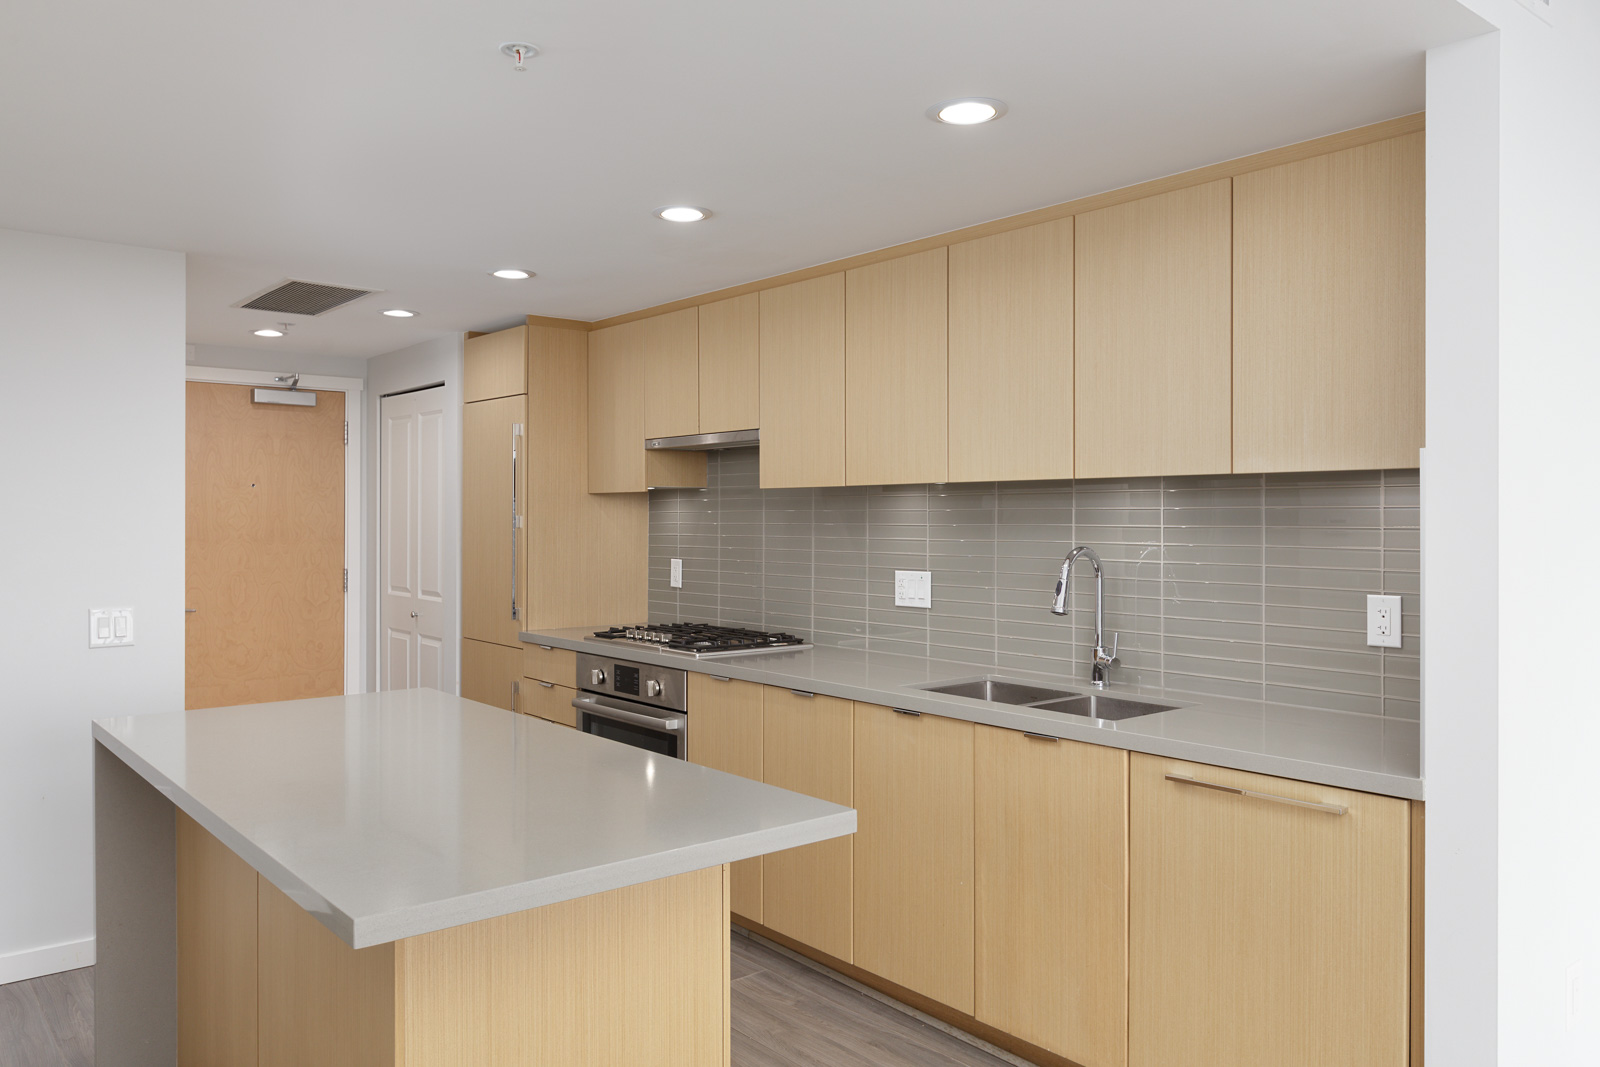 kitchen countertop with stove in background